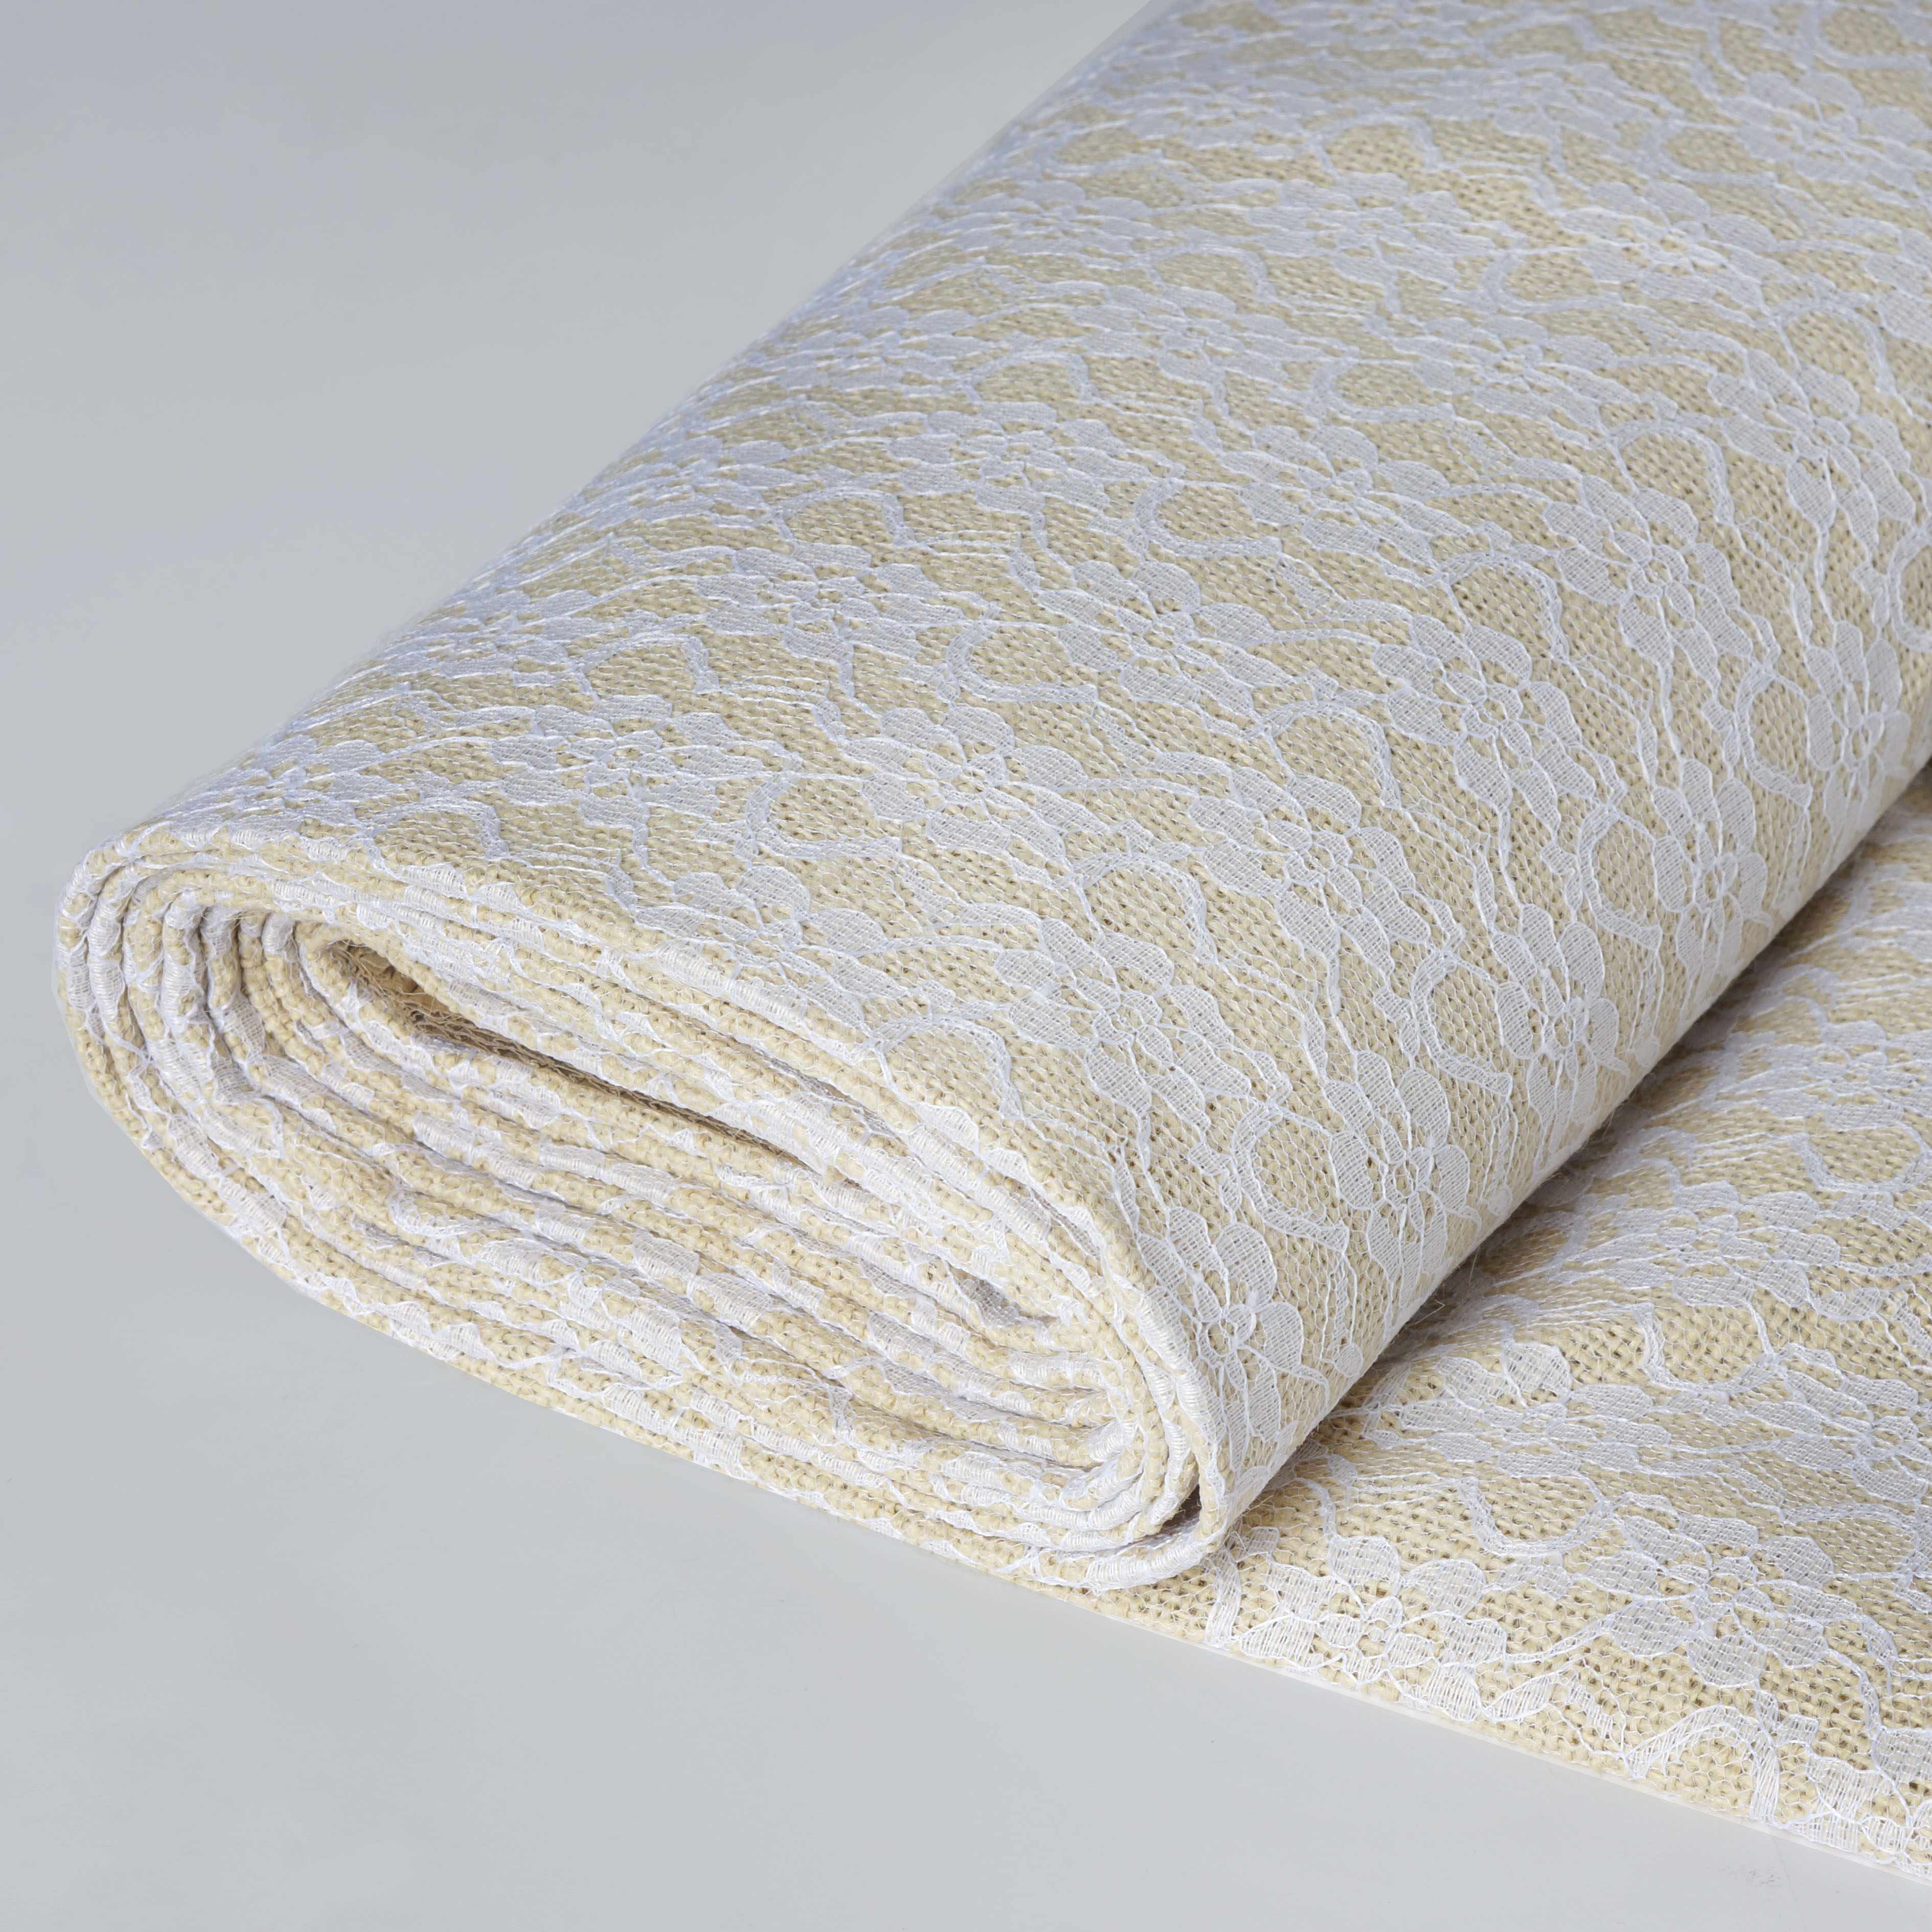 BalsaCircle 54 inch x 4 yards Natural Burlap with White Lace Fabric Roll - Sewing Crafts Draping Decorations Supplies